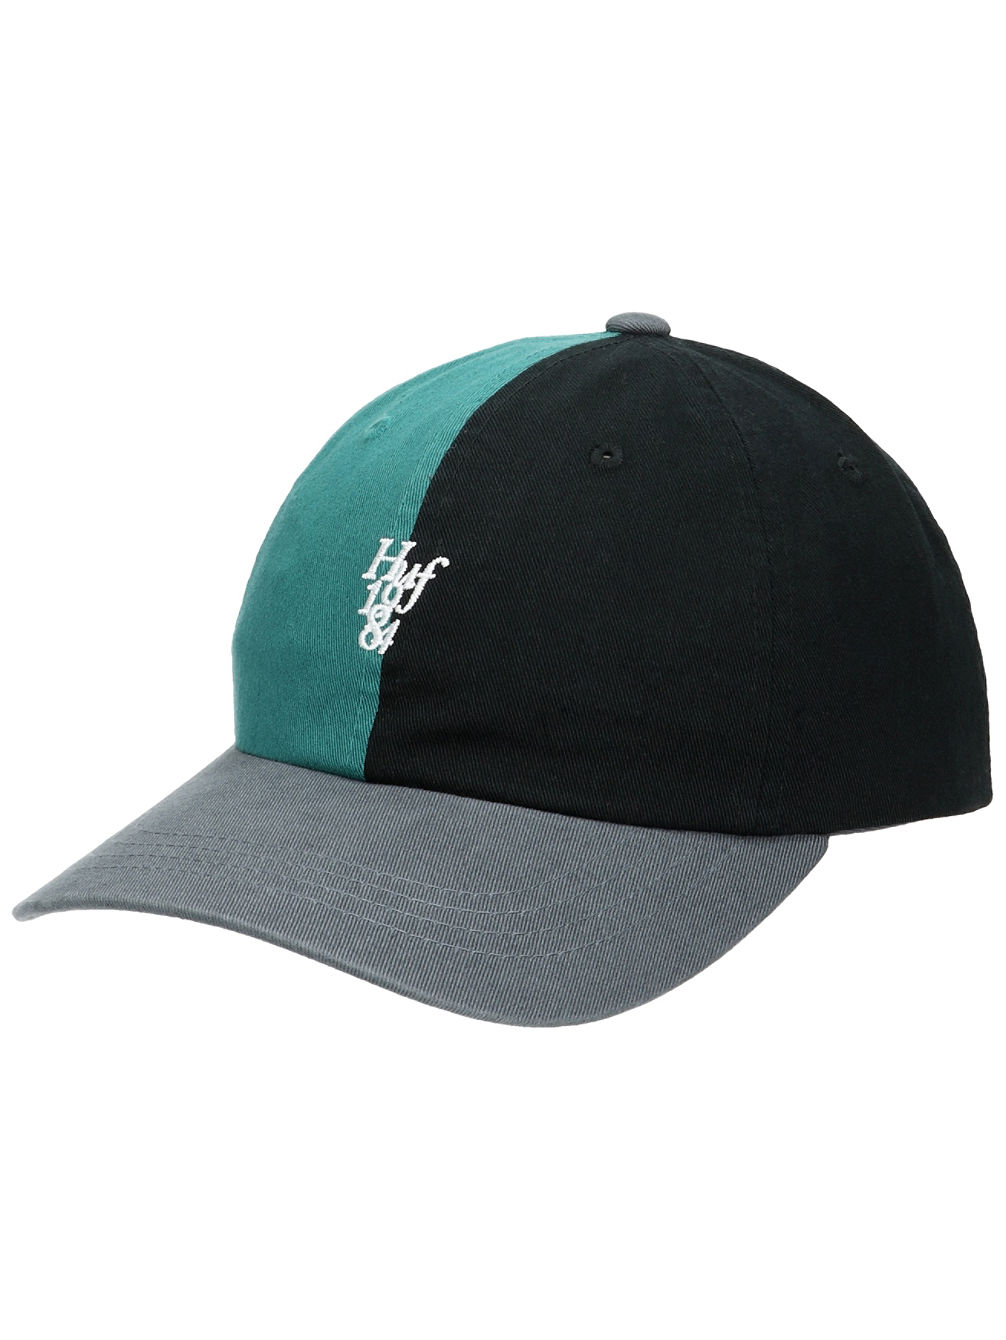 Country Club Curve Visor Cap